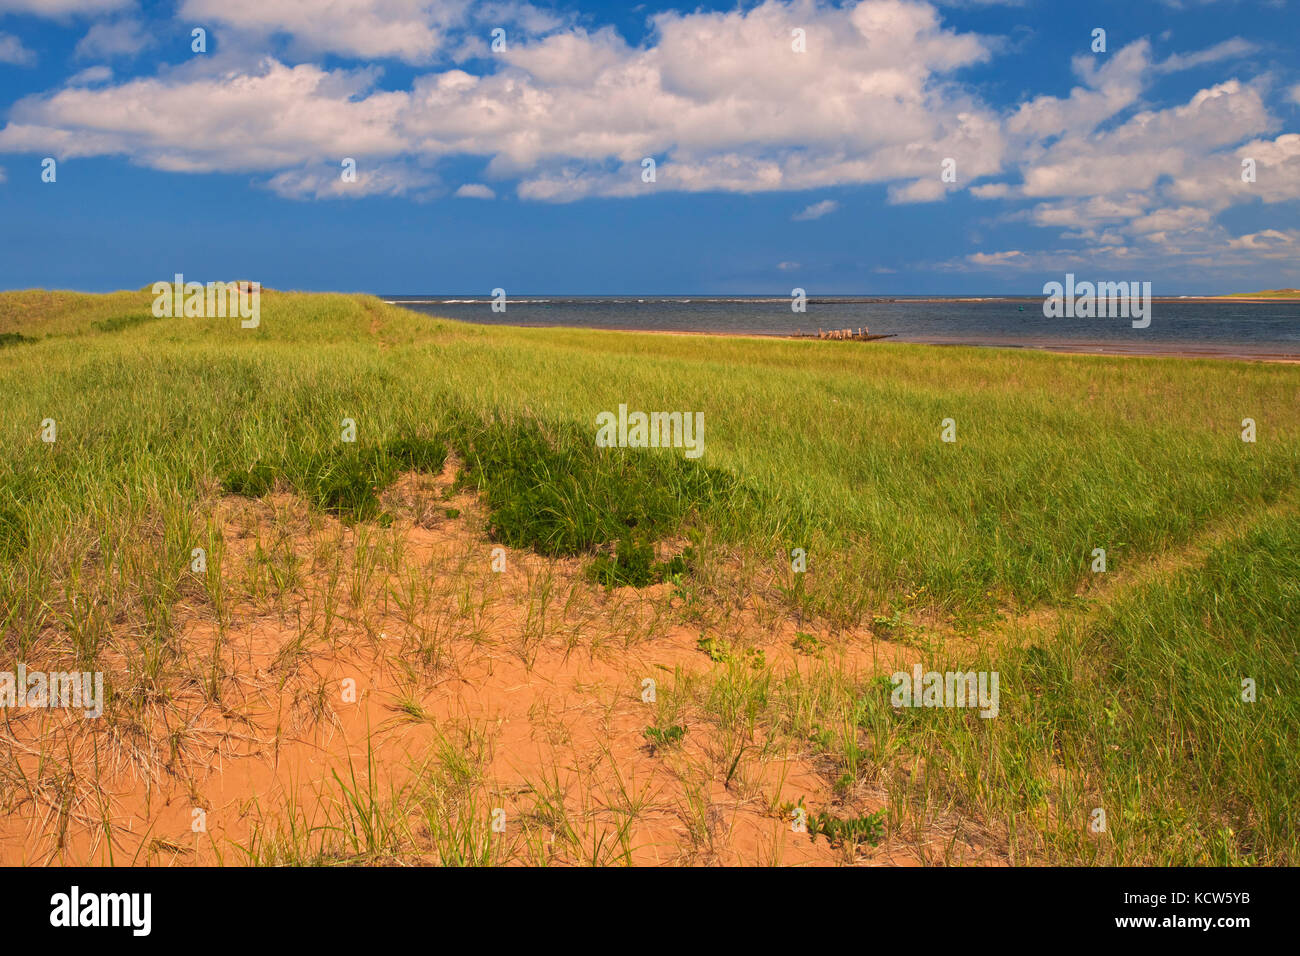 Sandy coastline along the GUlf of St. Lawrence, New London, Prince Edward Island, Canada - Stock Image